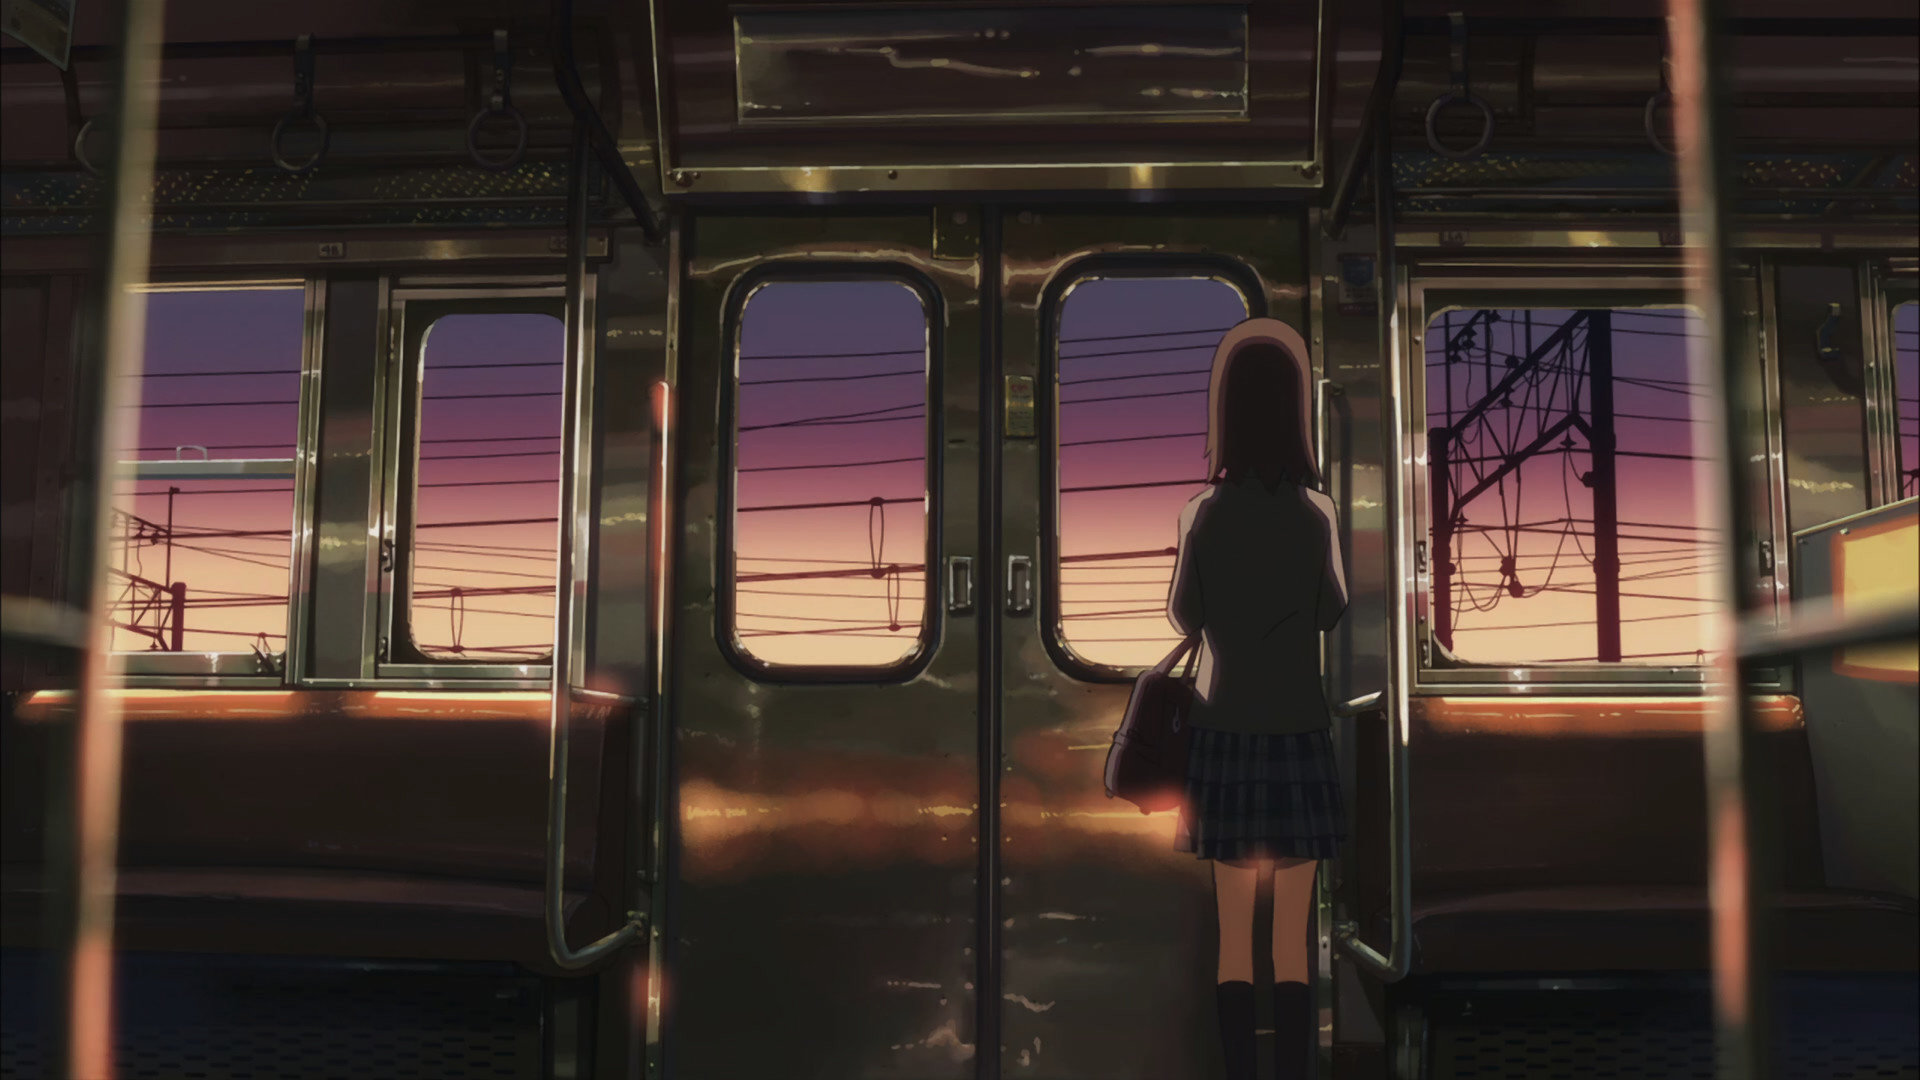 Awesome 5 (cm) Centimeters Per Second free wallpaper ID:90097 for hd 1920x1080 PC